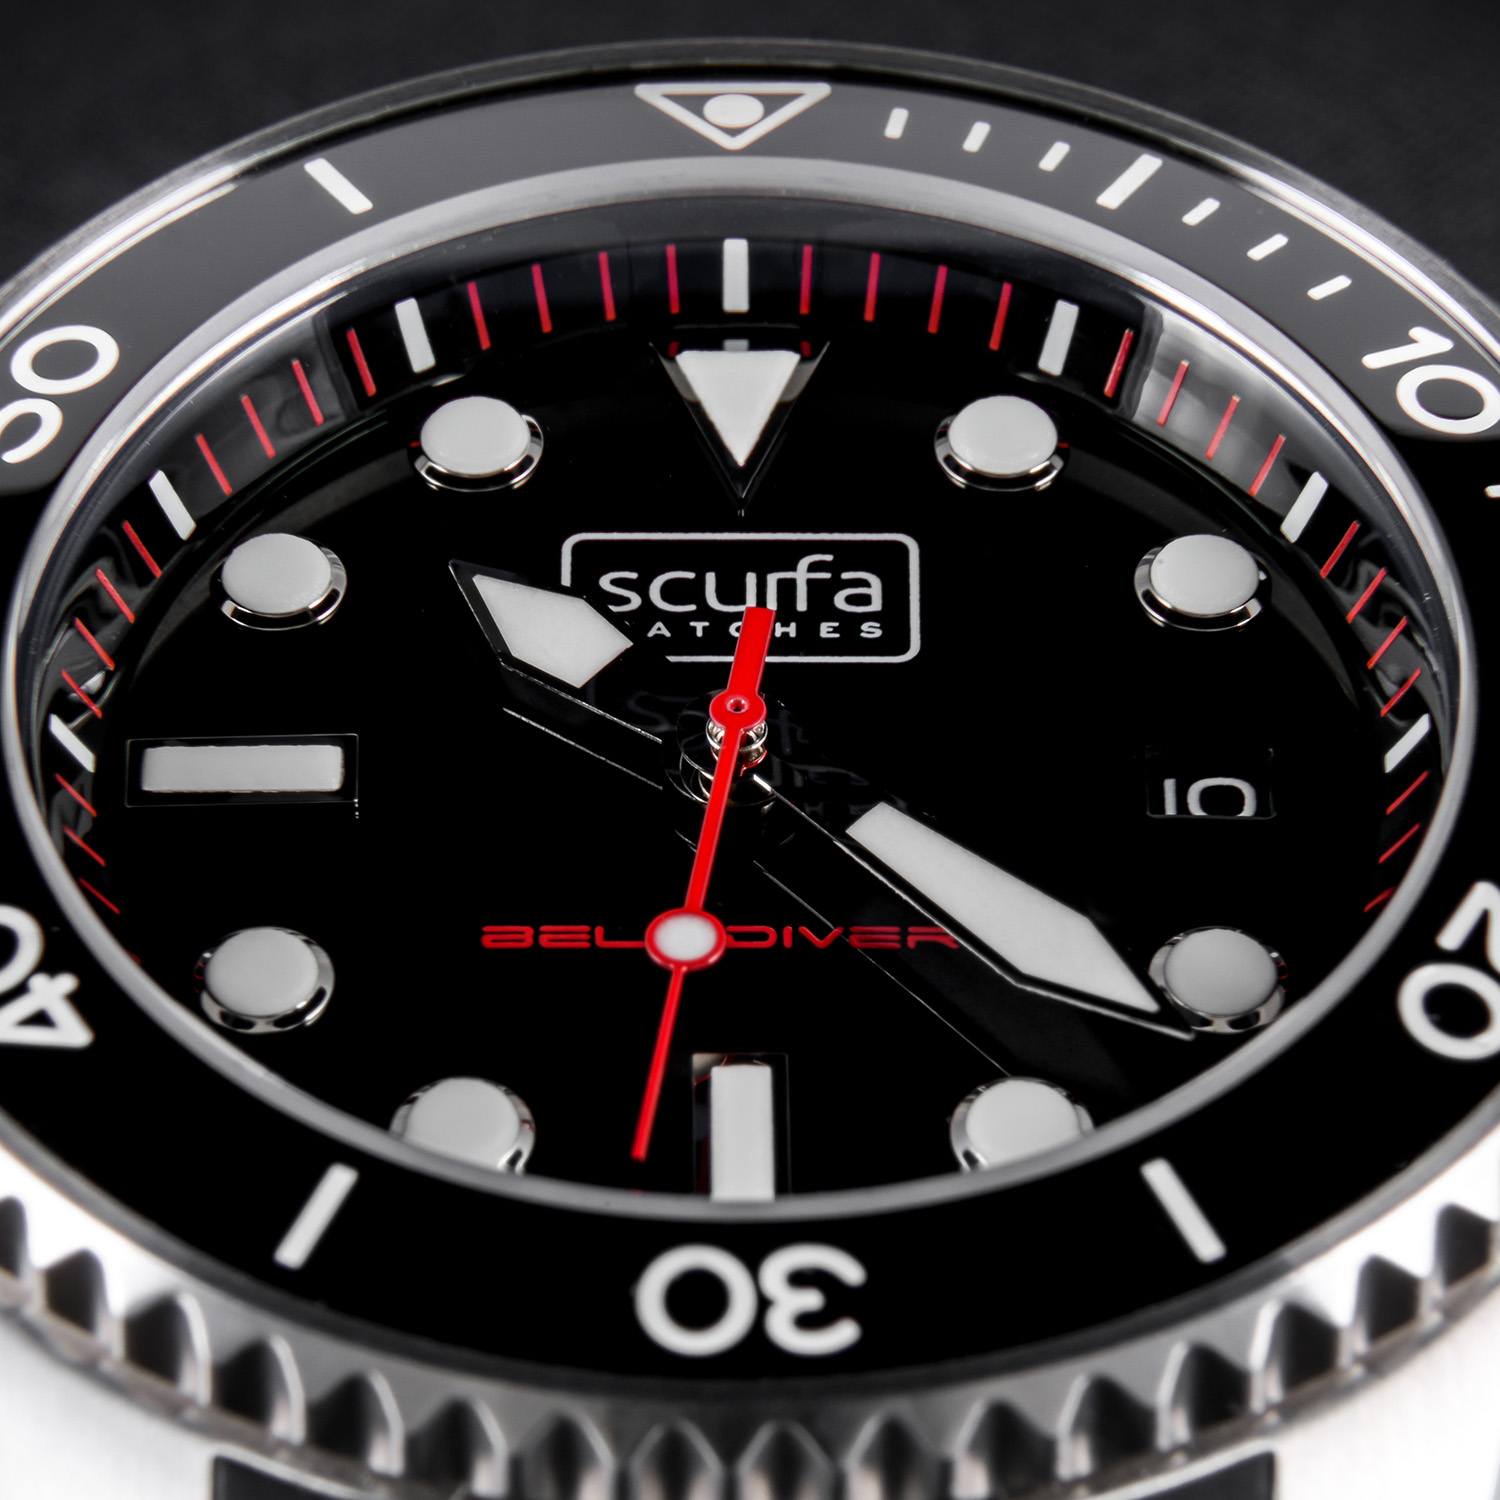 Scurfa's newest Bell Diver 1 SCURFA+Bell+Diver+1+STEEL+03